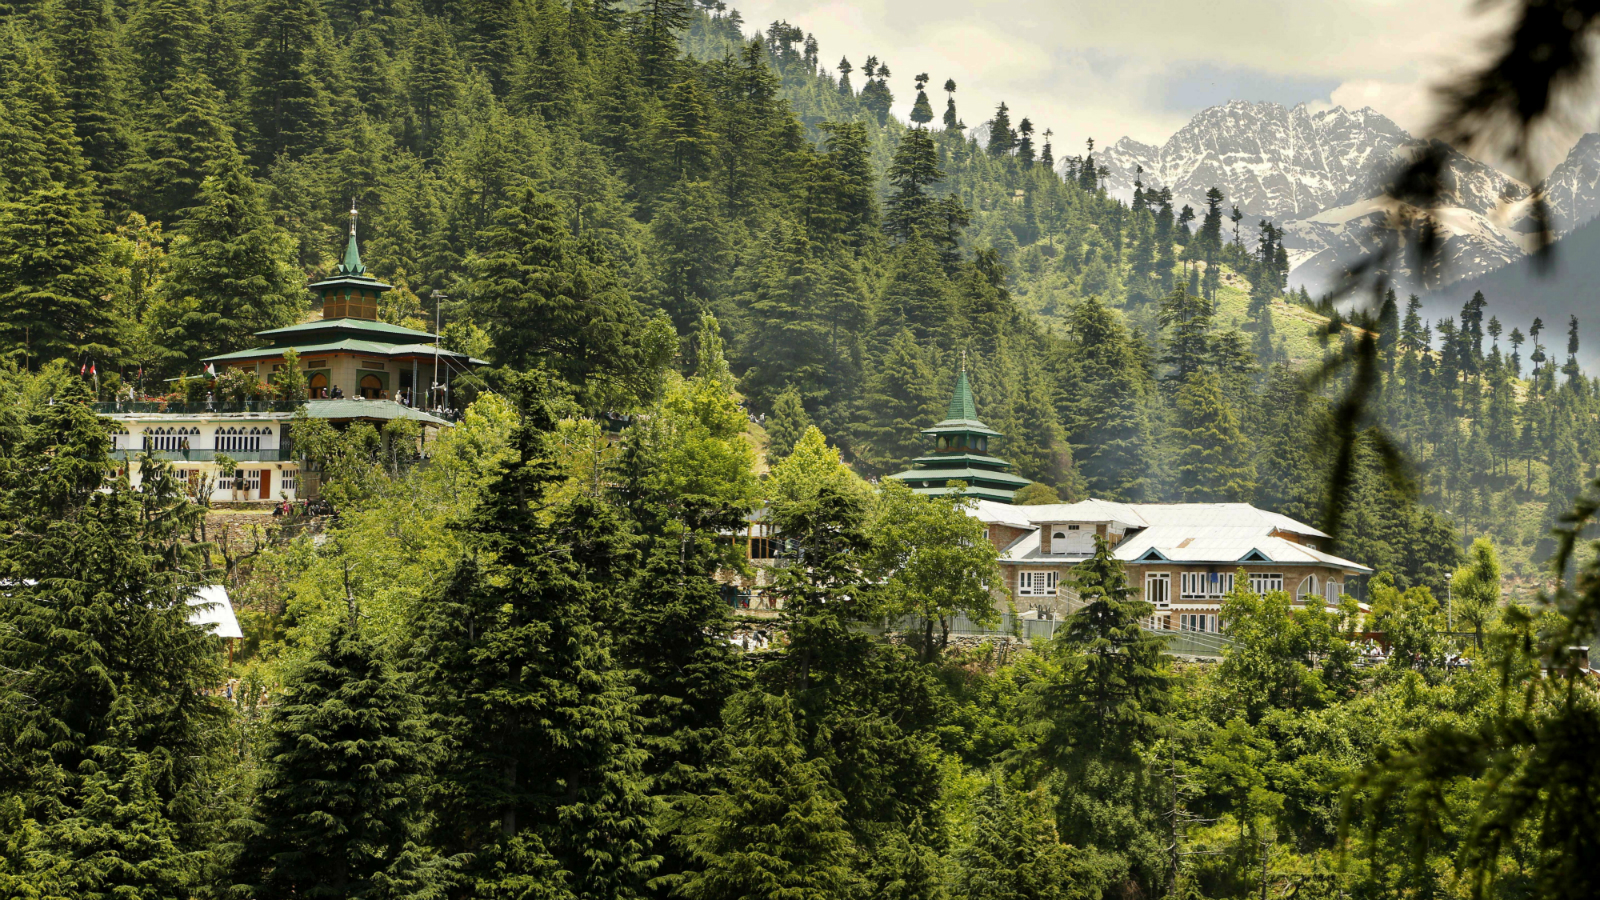 A view of the forest shrine of Miyan Peer, the revered Muslim saint of the nomadic Gujjar tribe in Baba Nagri, about 44 kilometers (28 miles) northeast of Srinagar, Indian controlled Kashmir, Monday, June 8, 2015. Thousands of devotees thronged the shrine Monday to observe the death anniversary of the saint.